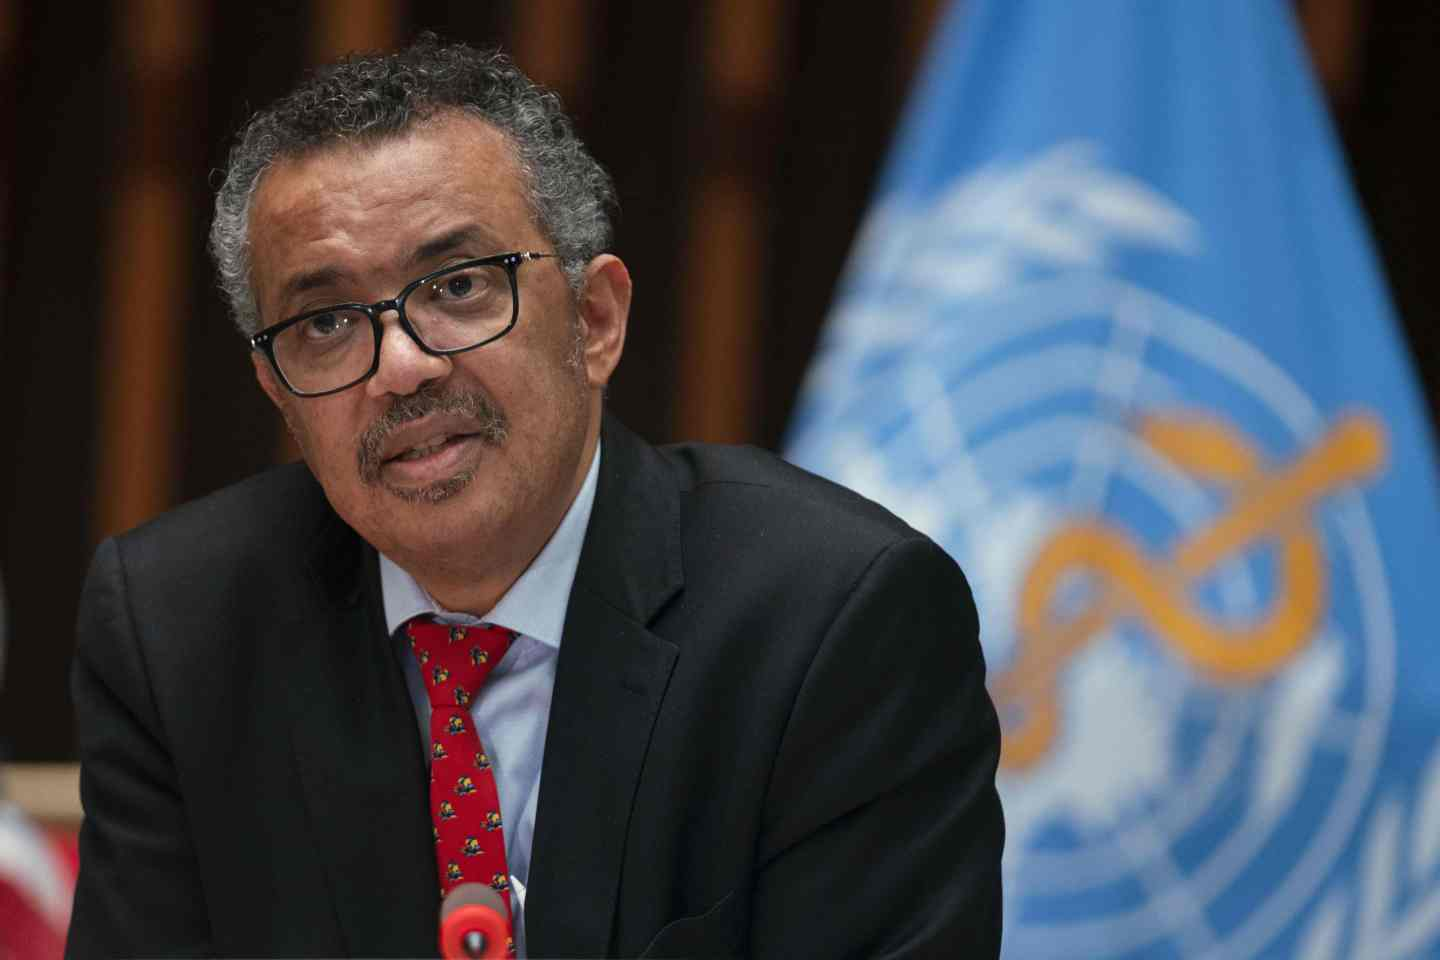 """""""I want to clarify that all hypotheses remain open and require further study,"""" saidWorld Health Organization Director-General Tedros Adhanom Ghebreyesus in February 2021."""